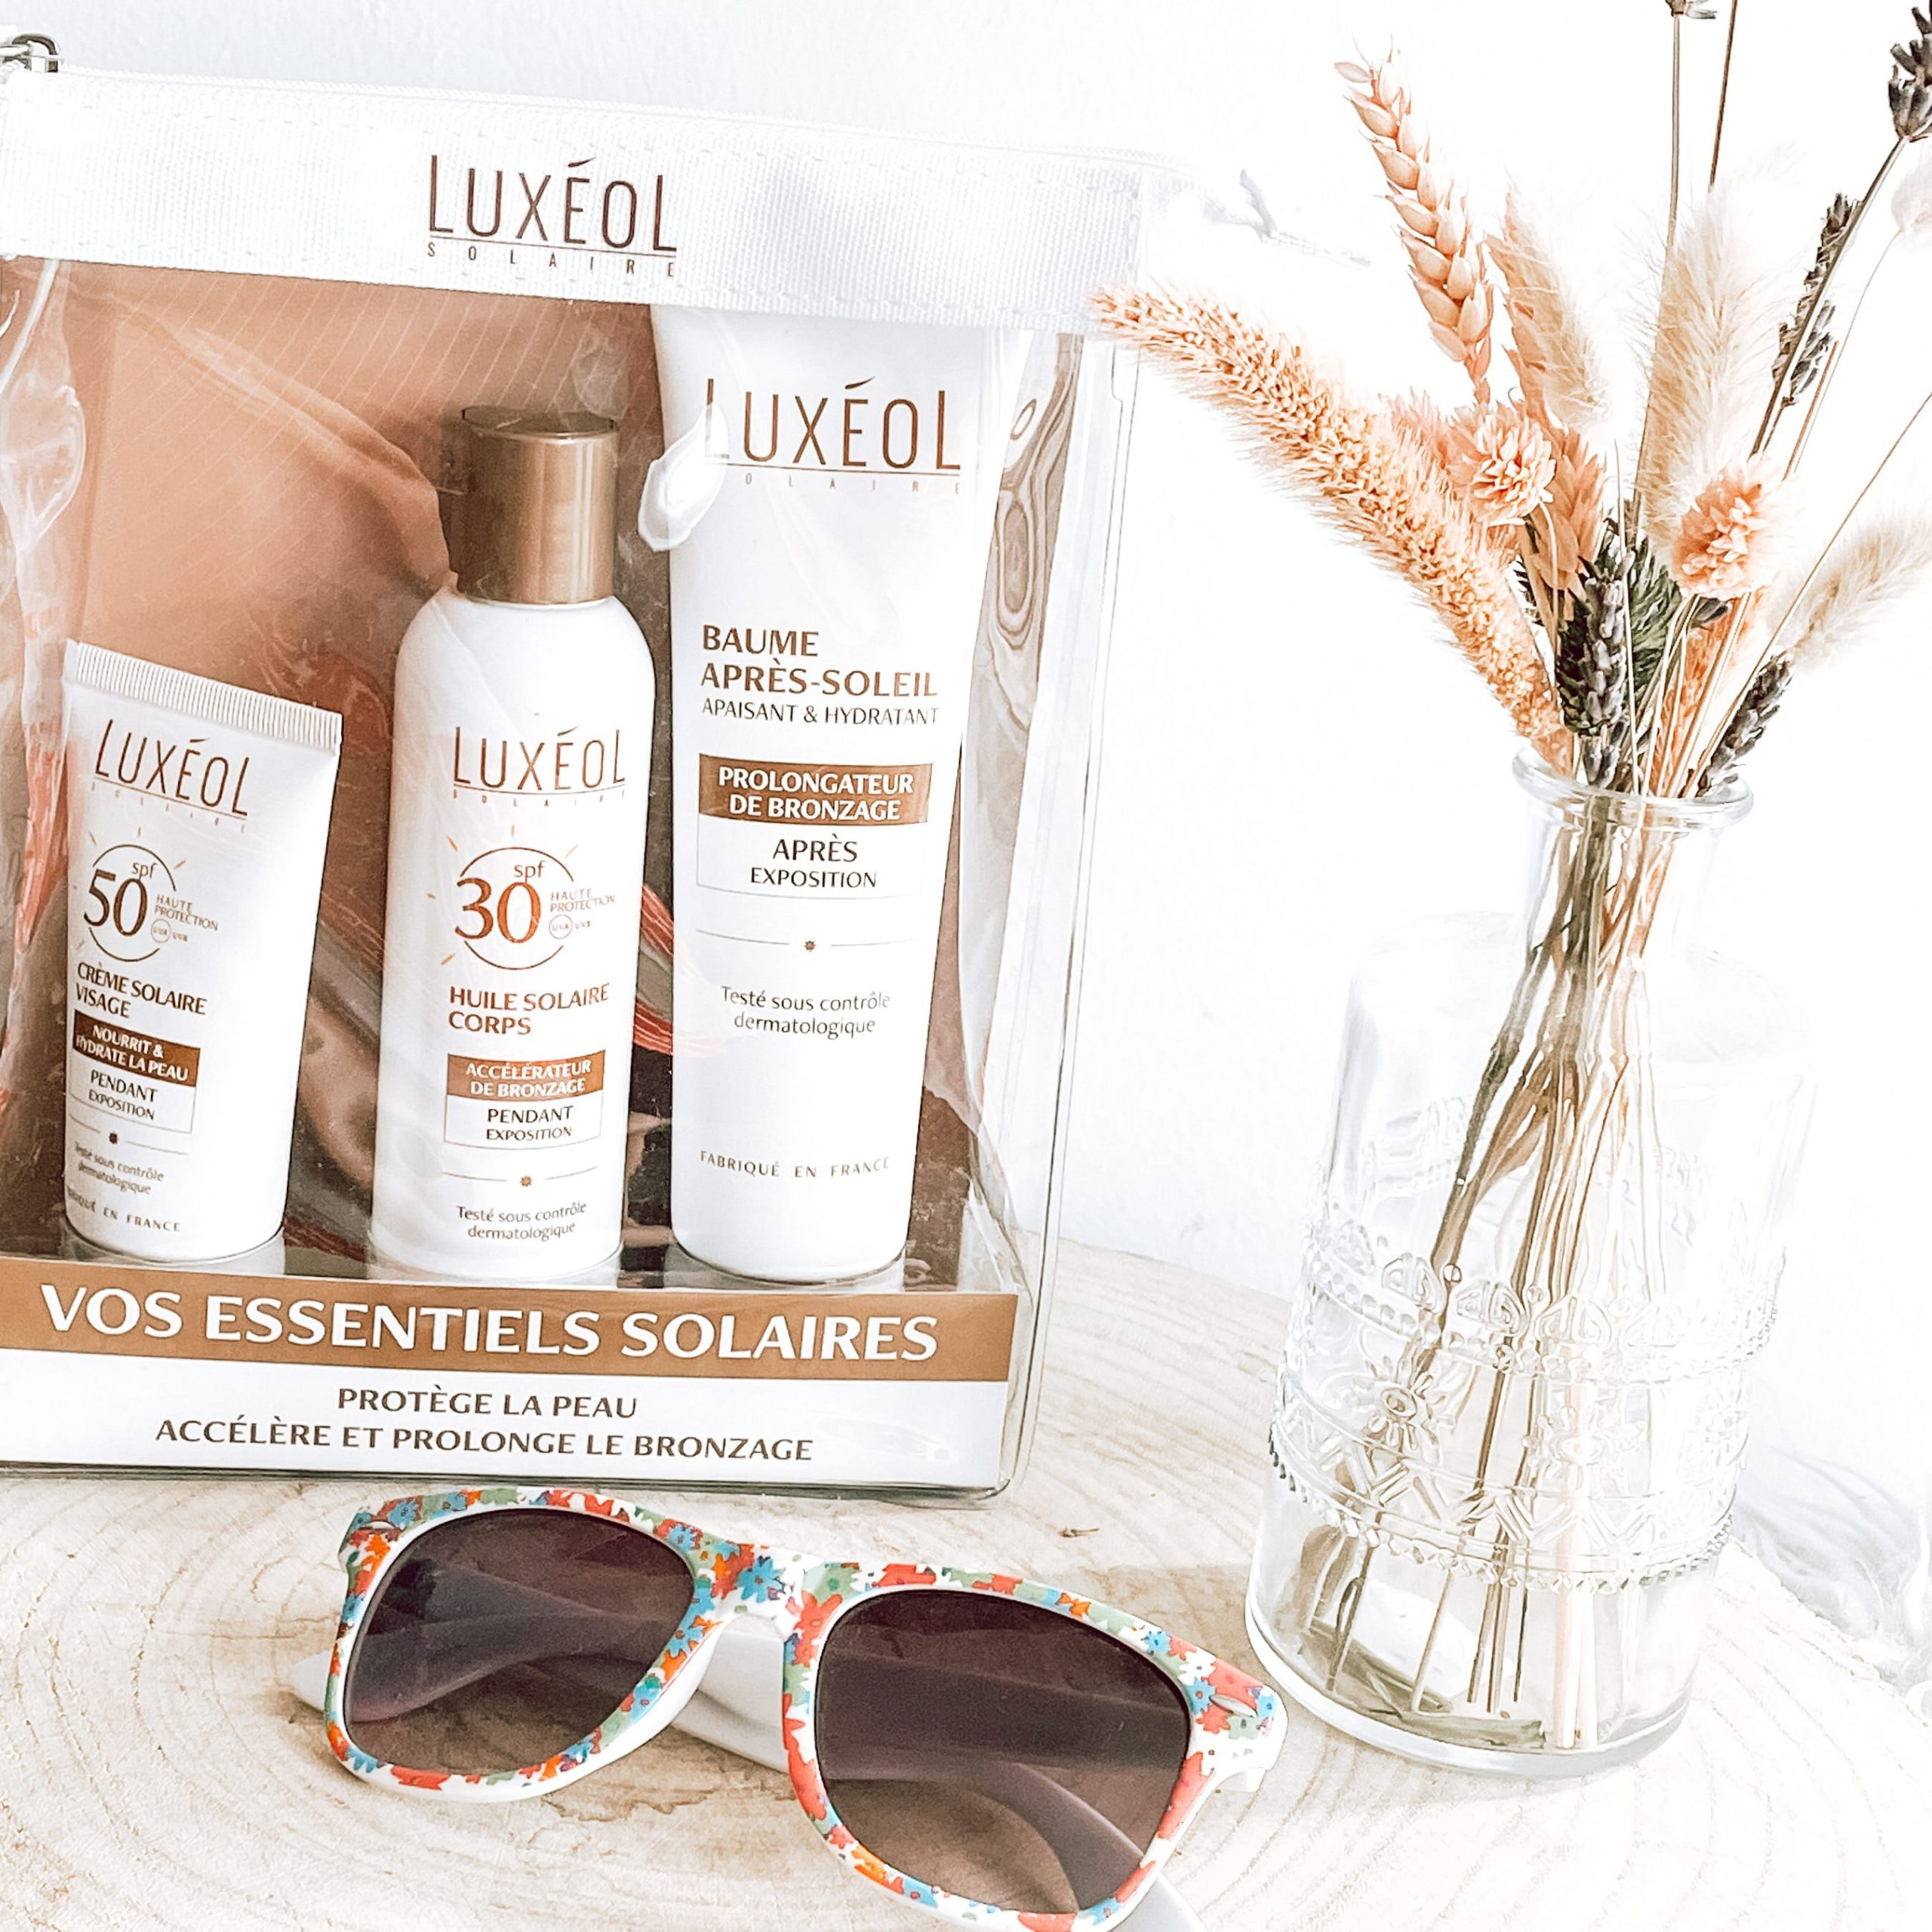 Luxeol morandmors blog soin pack solaire corps vacances summer beaute soleil protection